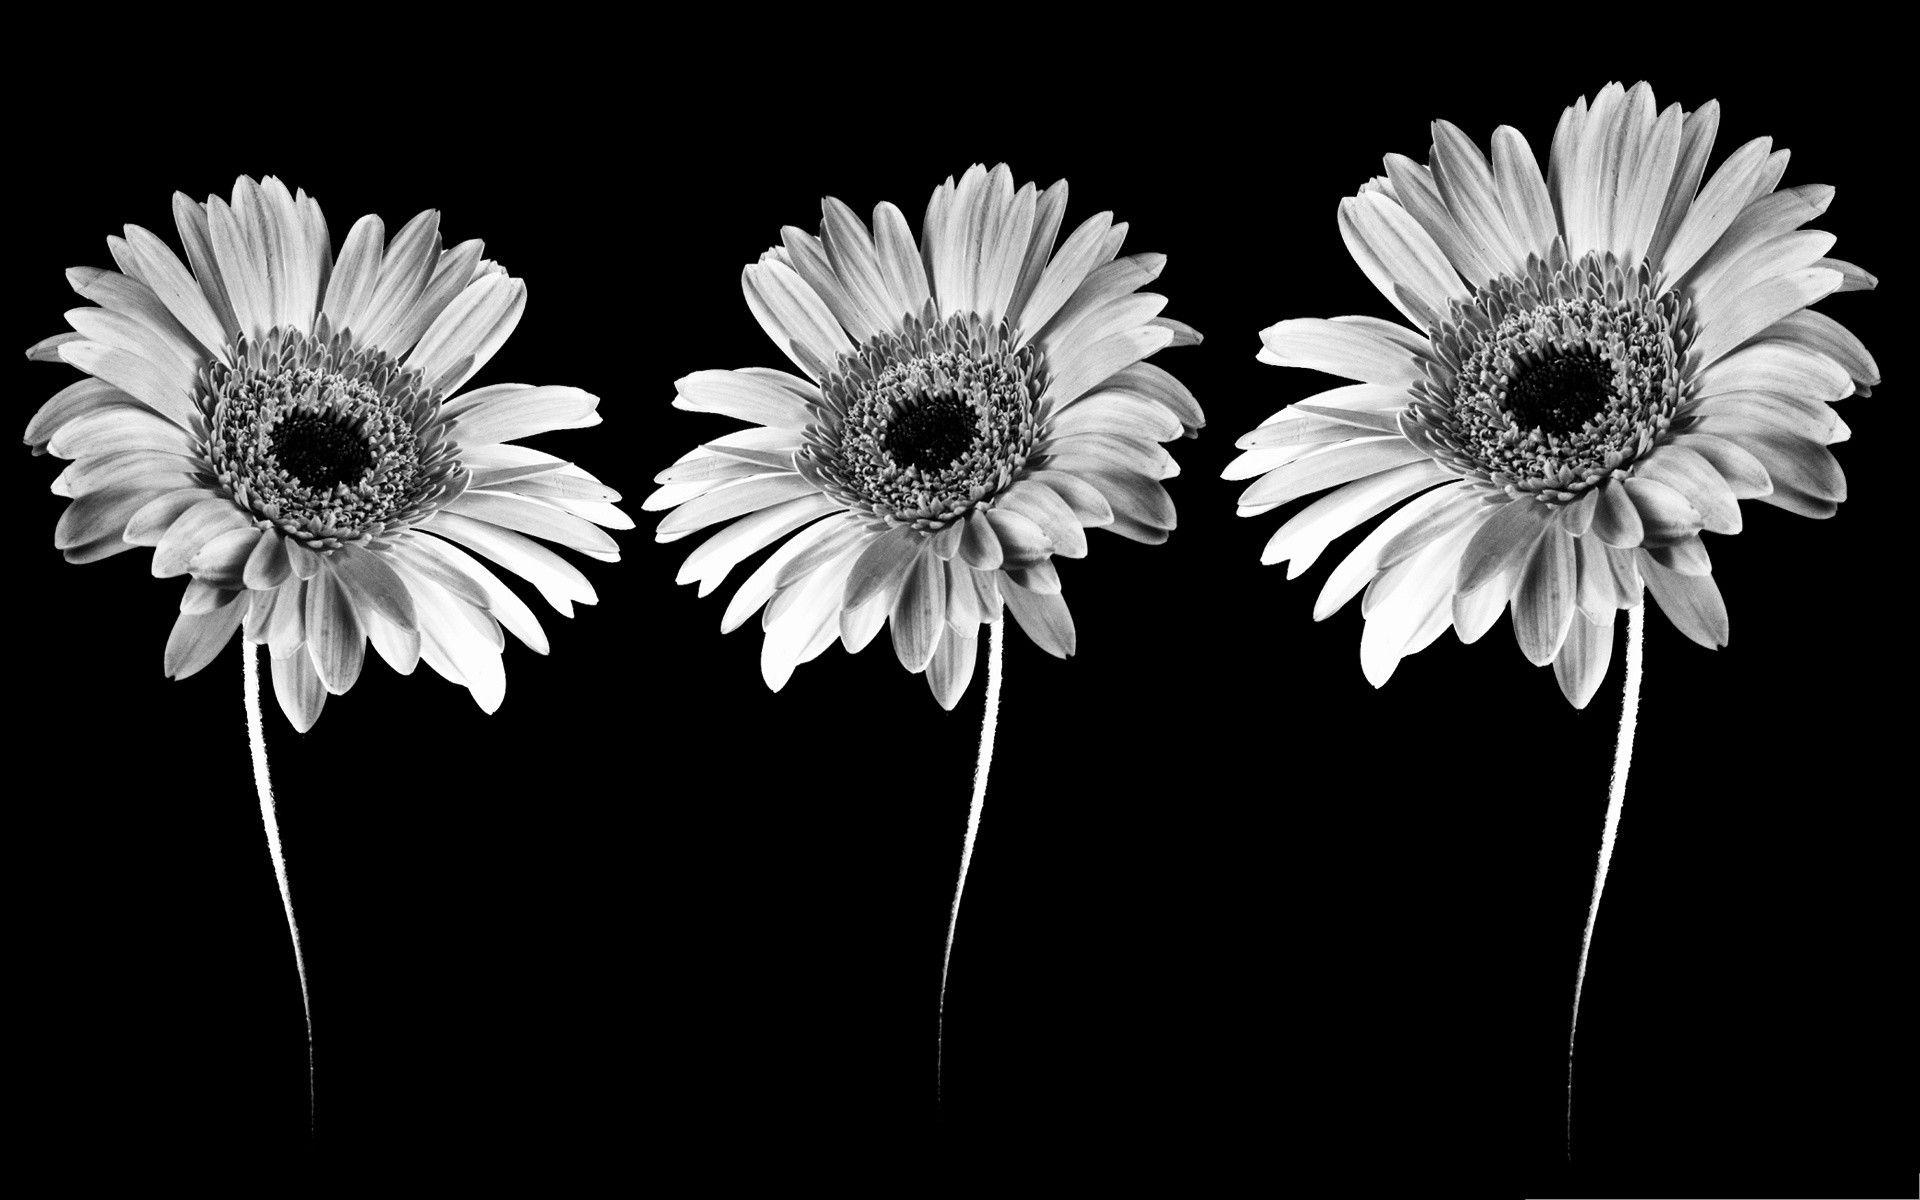 Black and White Flower Wallpapers